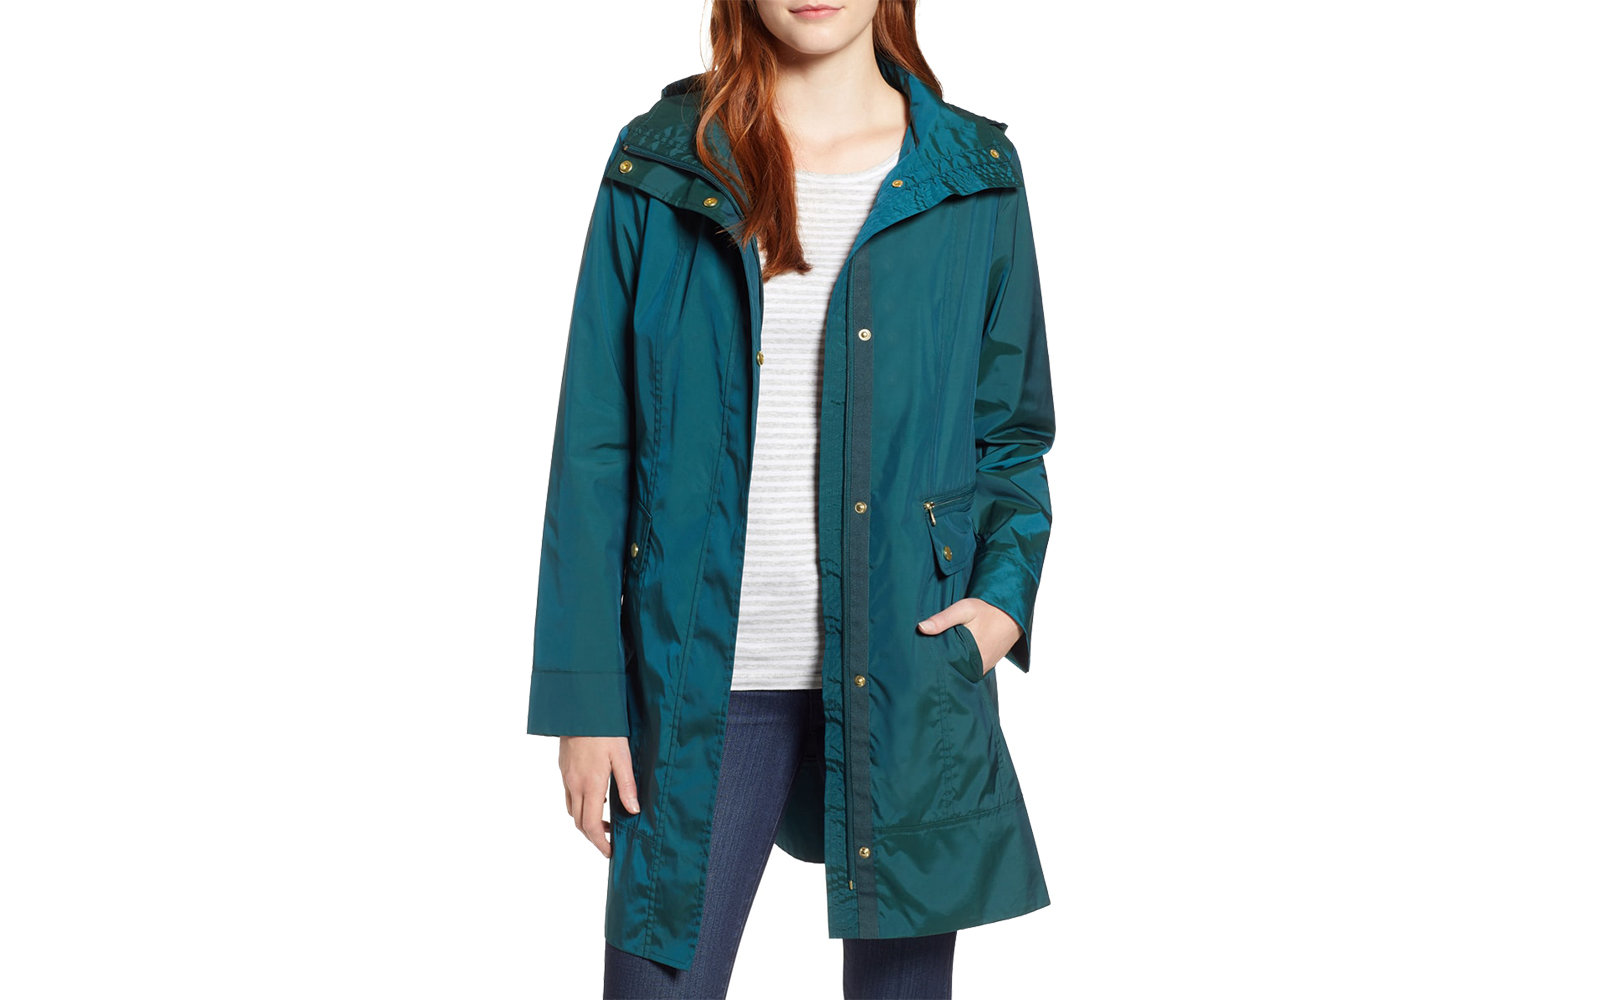 famous designer brand hot sale newest style of 14 Best Women's Rain Jackets, According to Customers ...